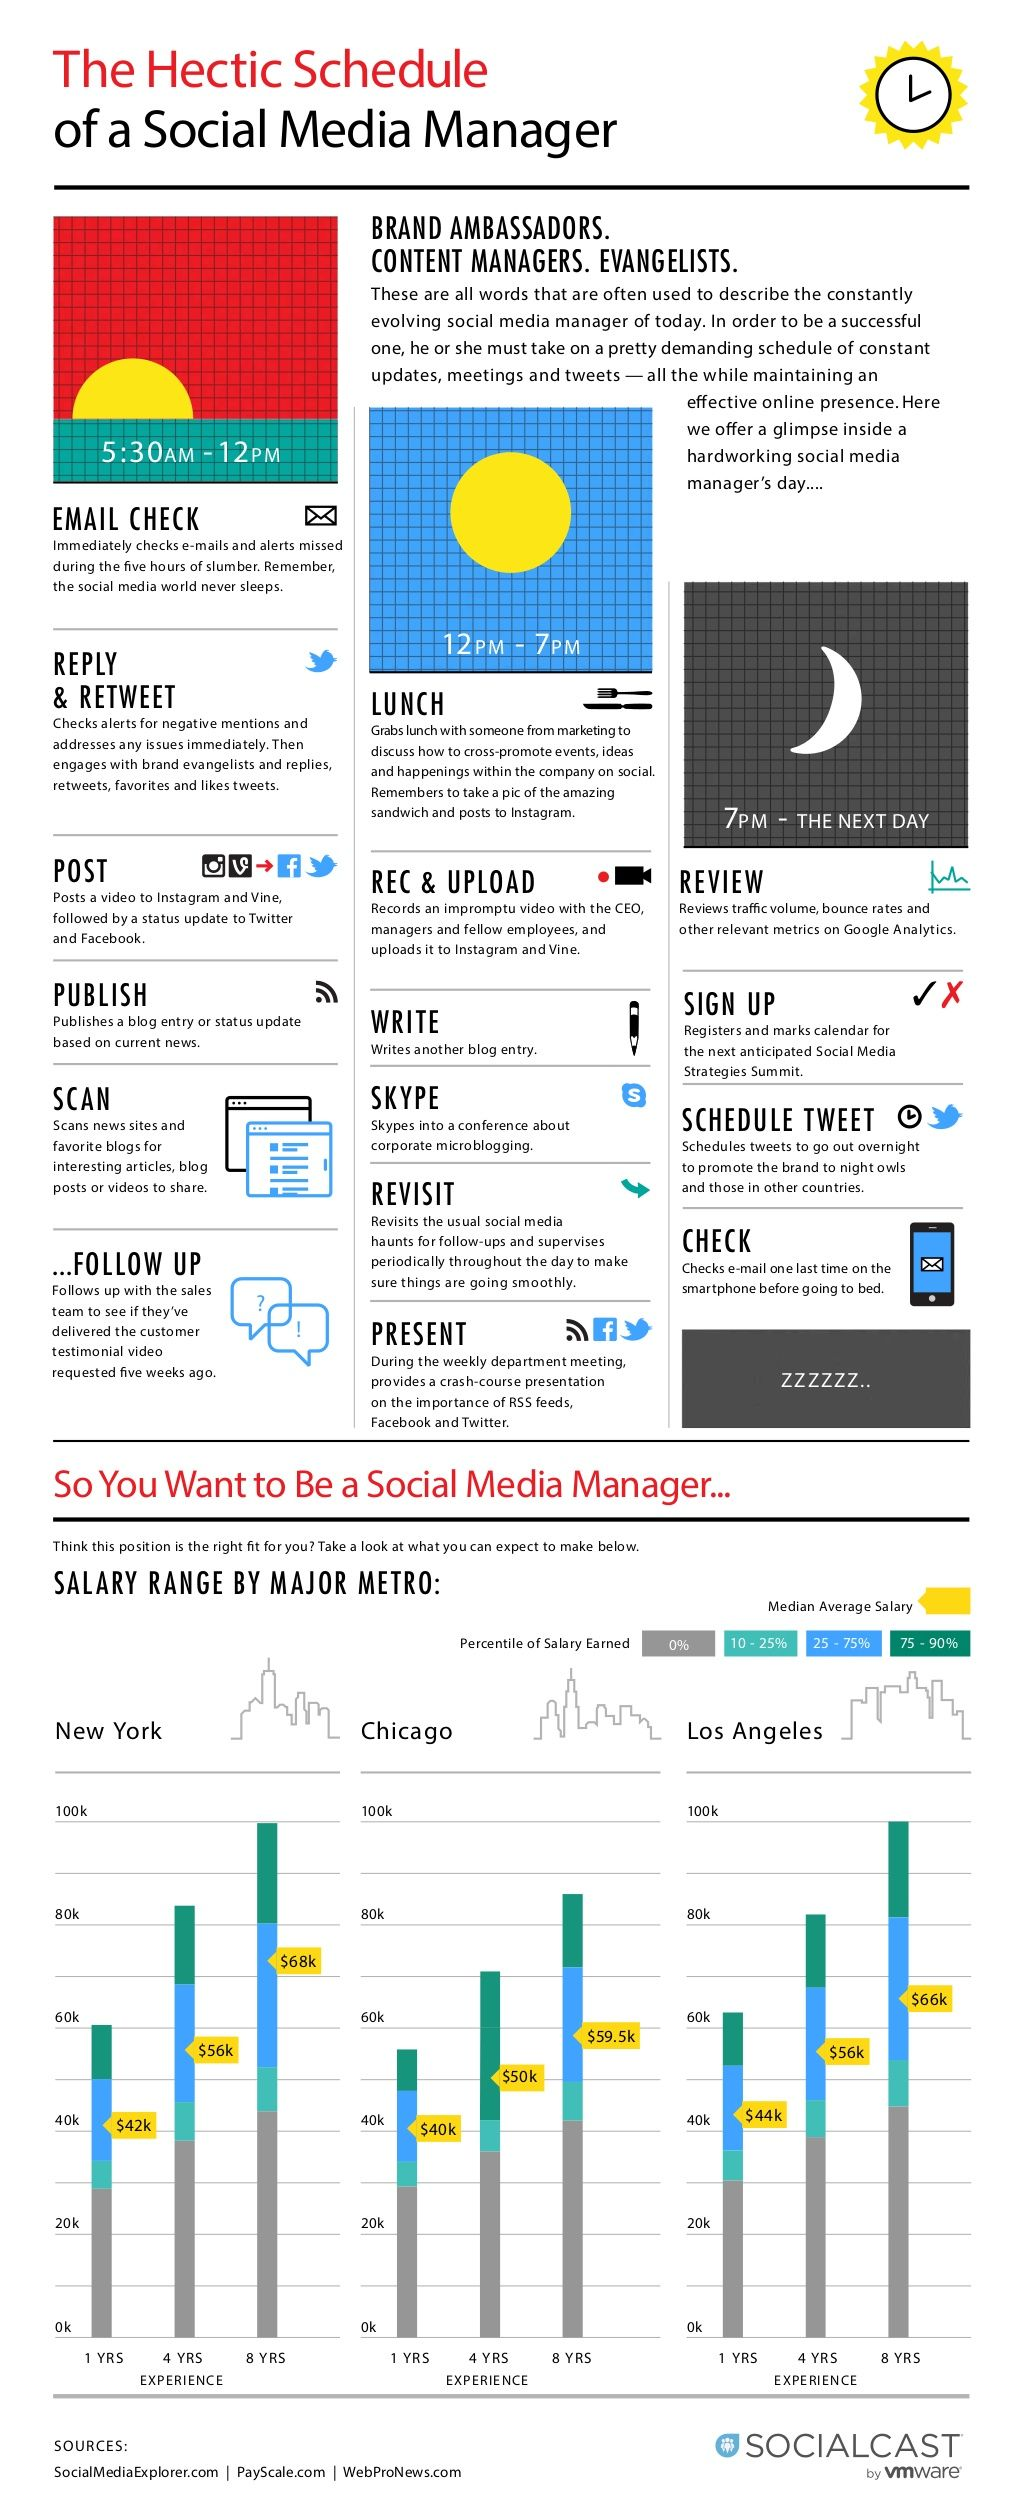 The Hectic Schedule of a Social Media Manager #infographic